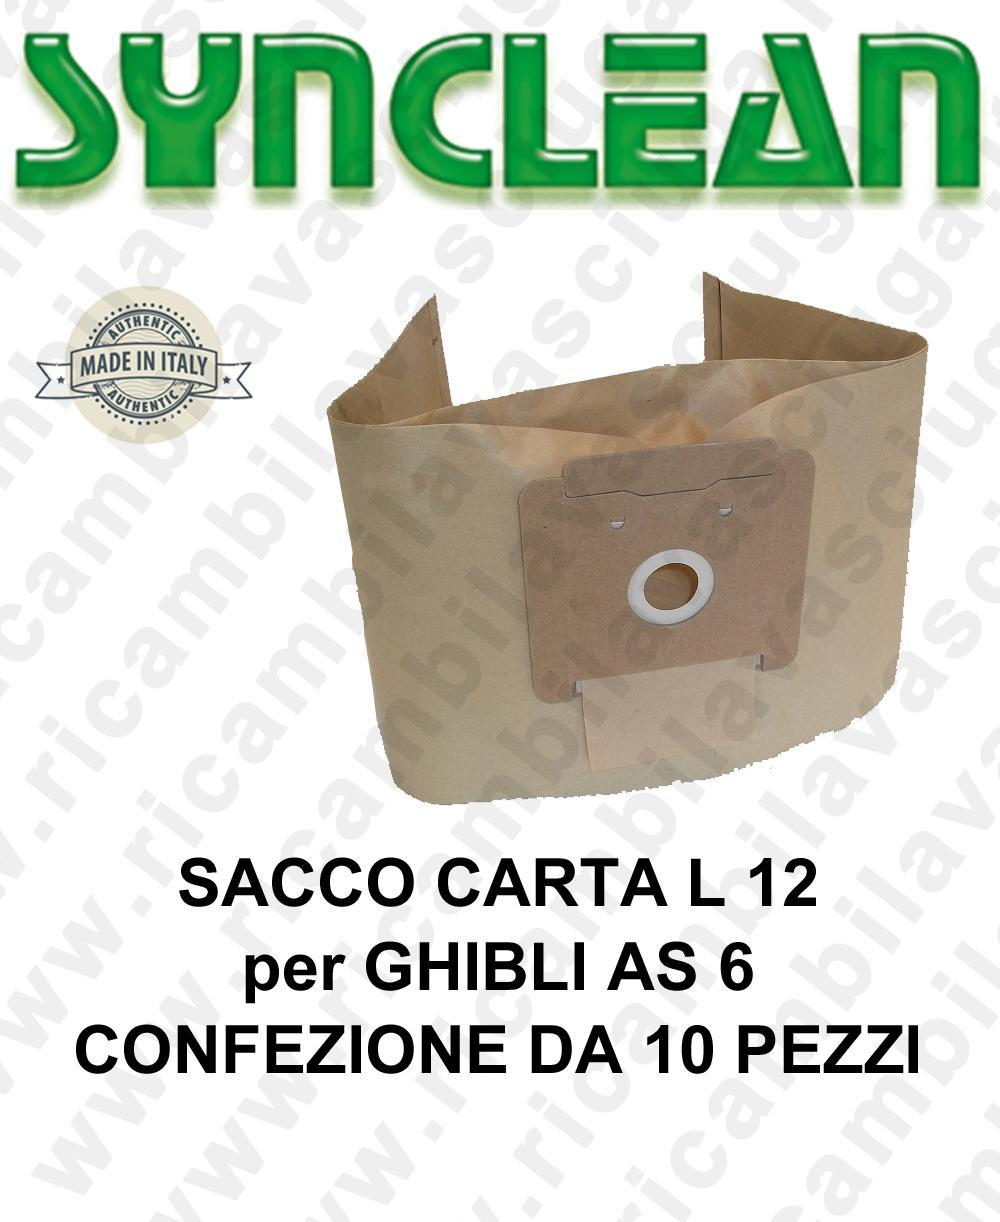 Sacco carta litres 12 for GHIBLI mod. AS 6 10 pieces for box